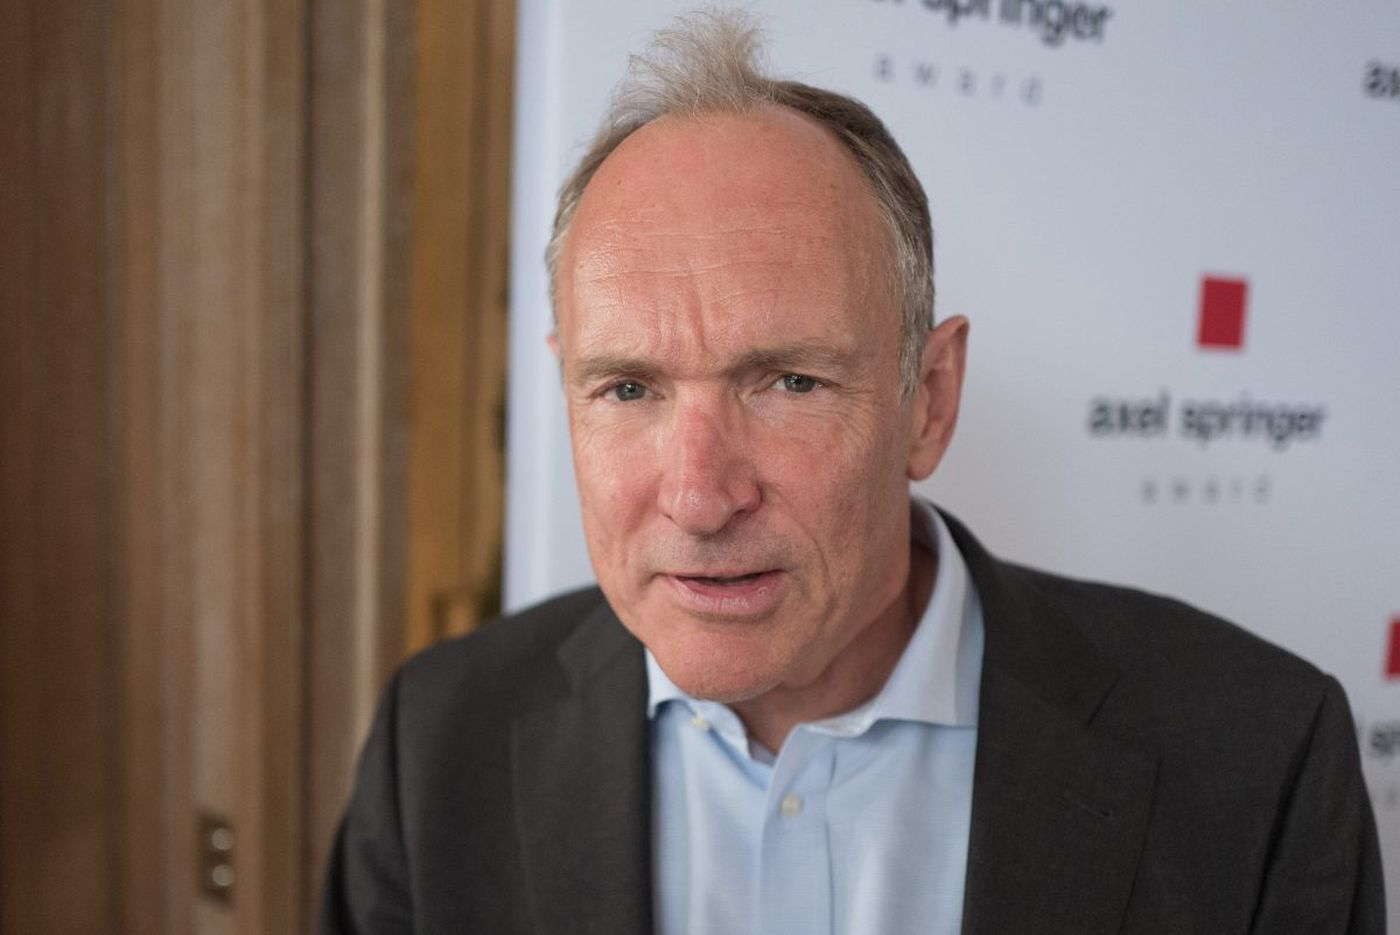 The World Wide Web at 29: Tim Berners-Lee talks weaponization and big tech